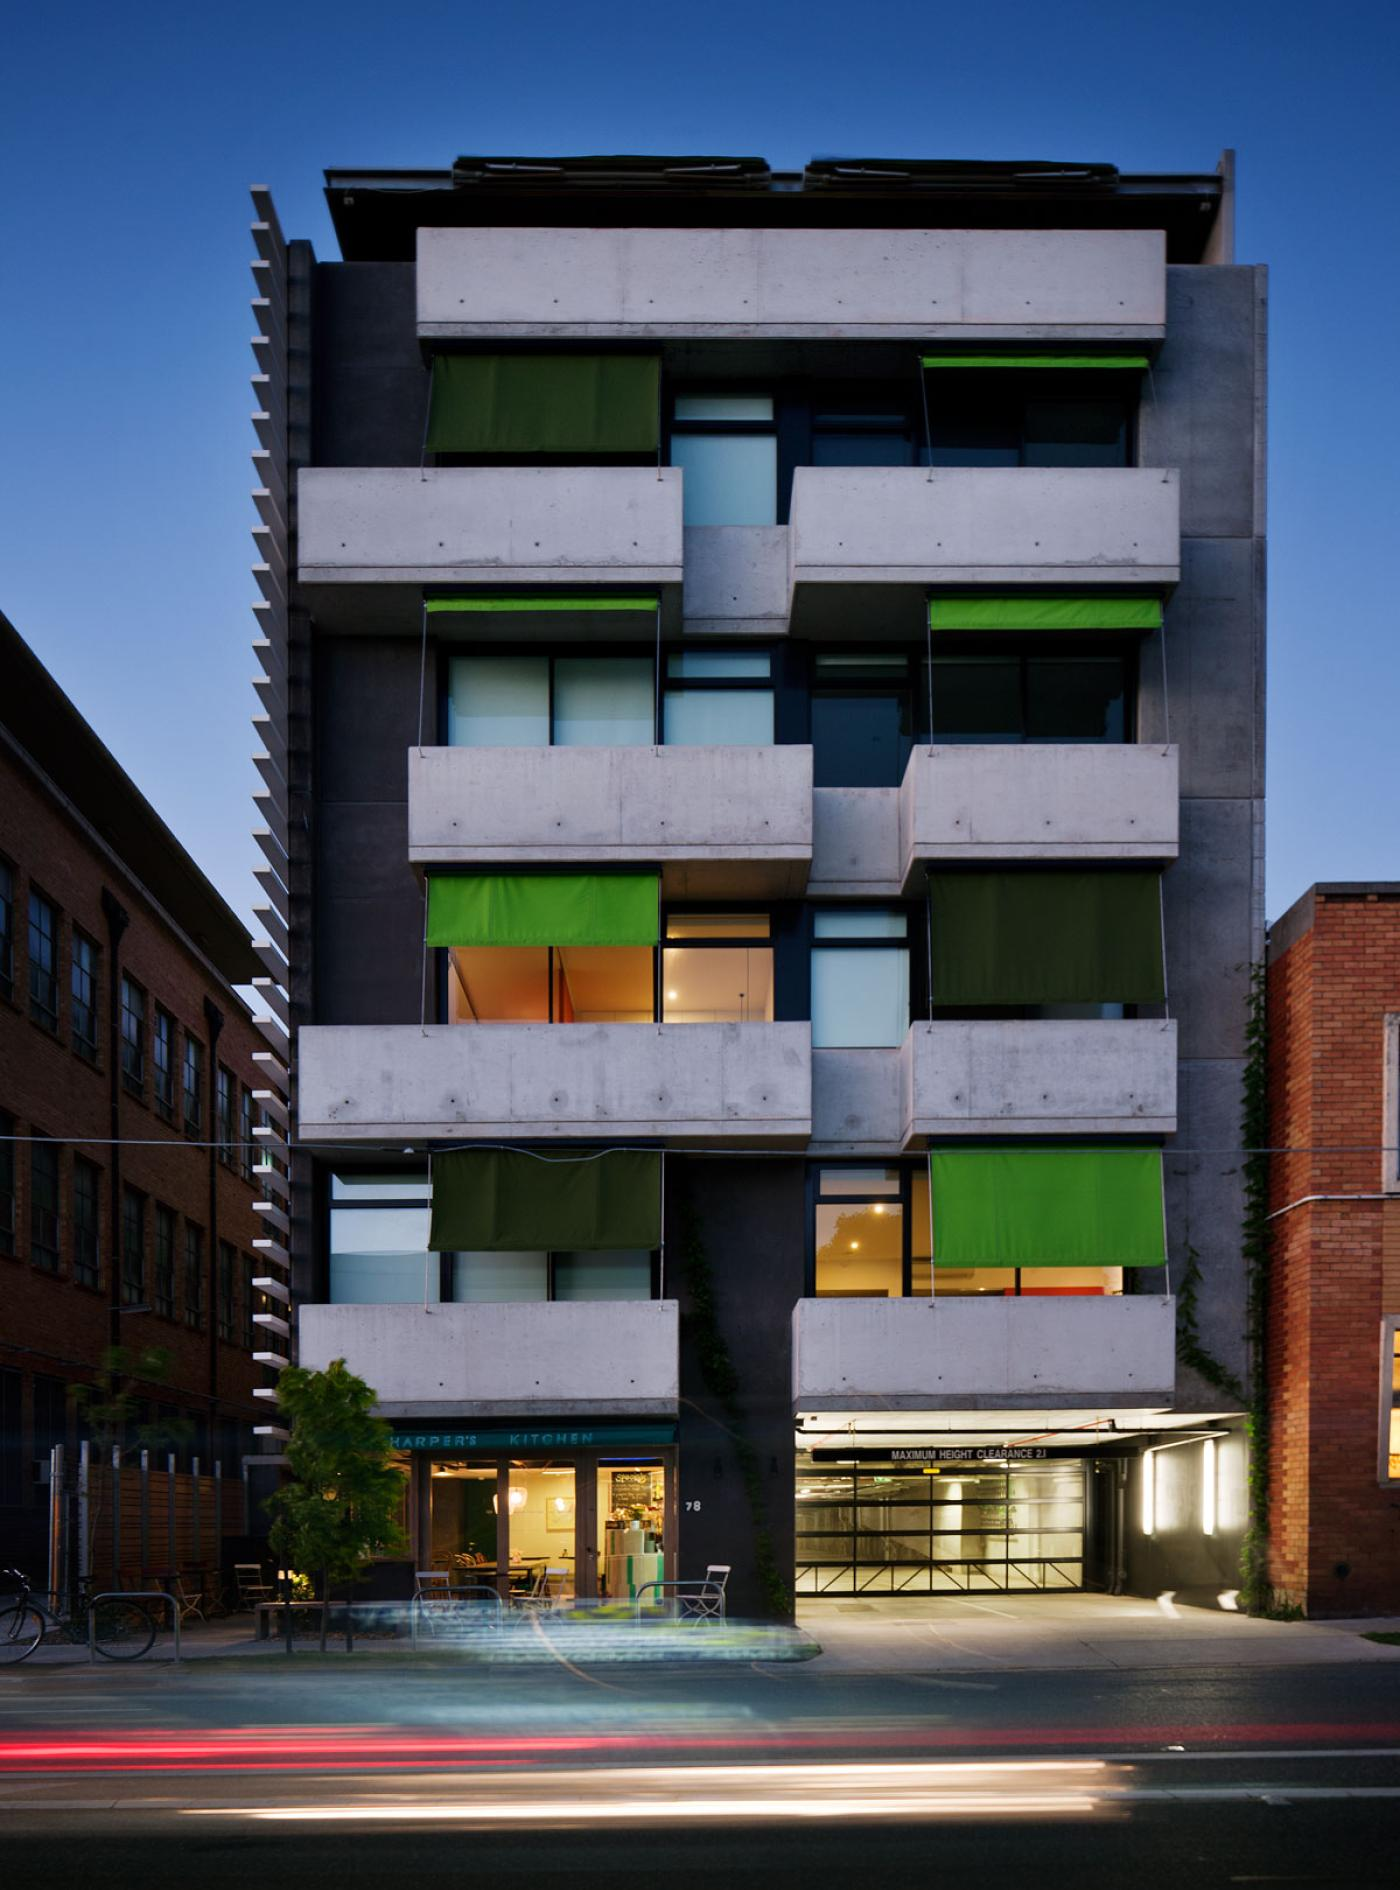 Completed In 2009 Harper Lane Delivers 72 Thoughtfully Designed One And Two Bedroom Apartments Studio Office Spaces